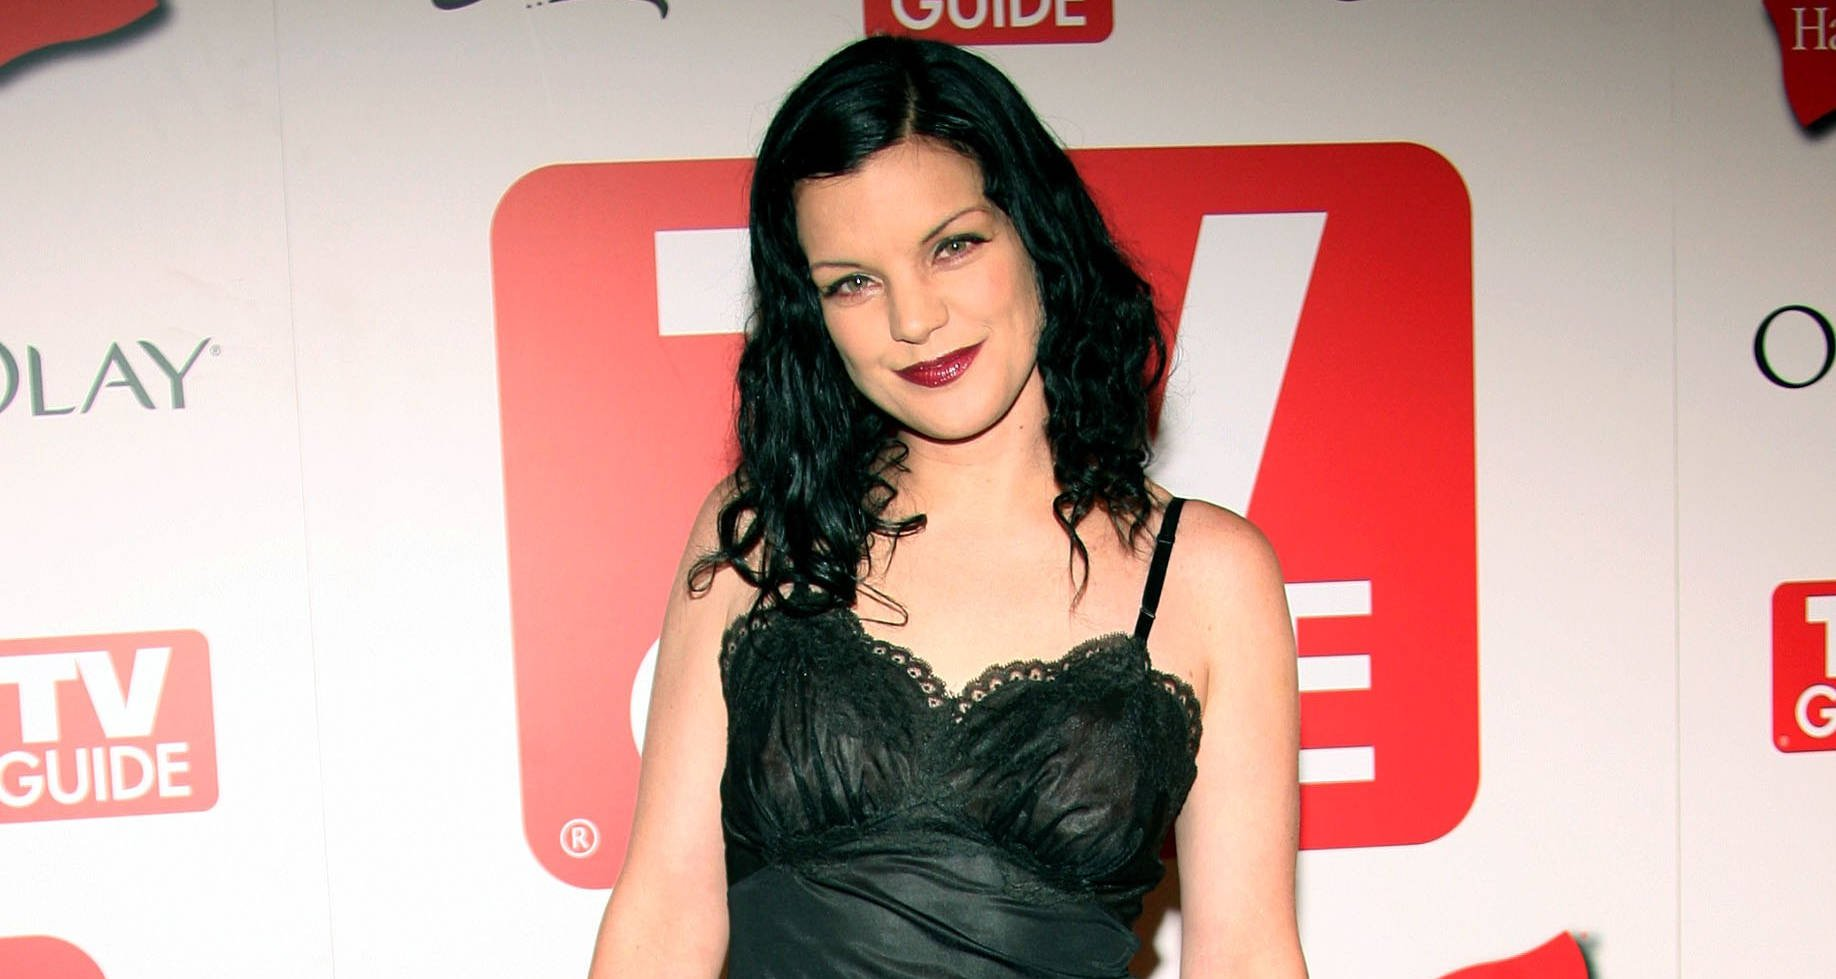 Pauley Perrette as Abby on NCIS